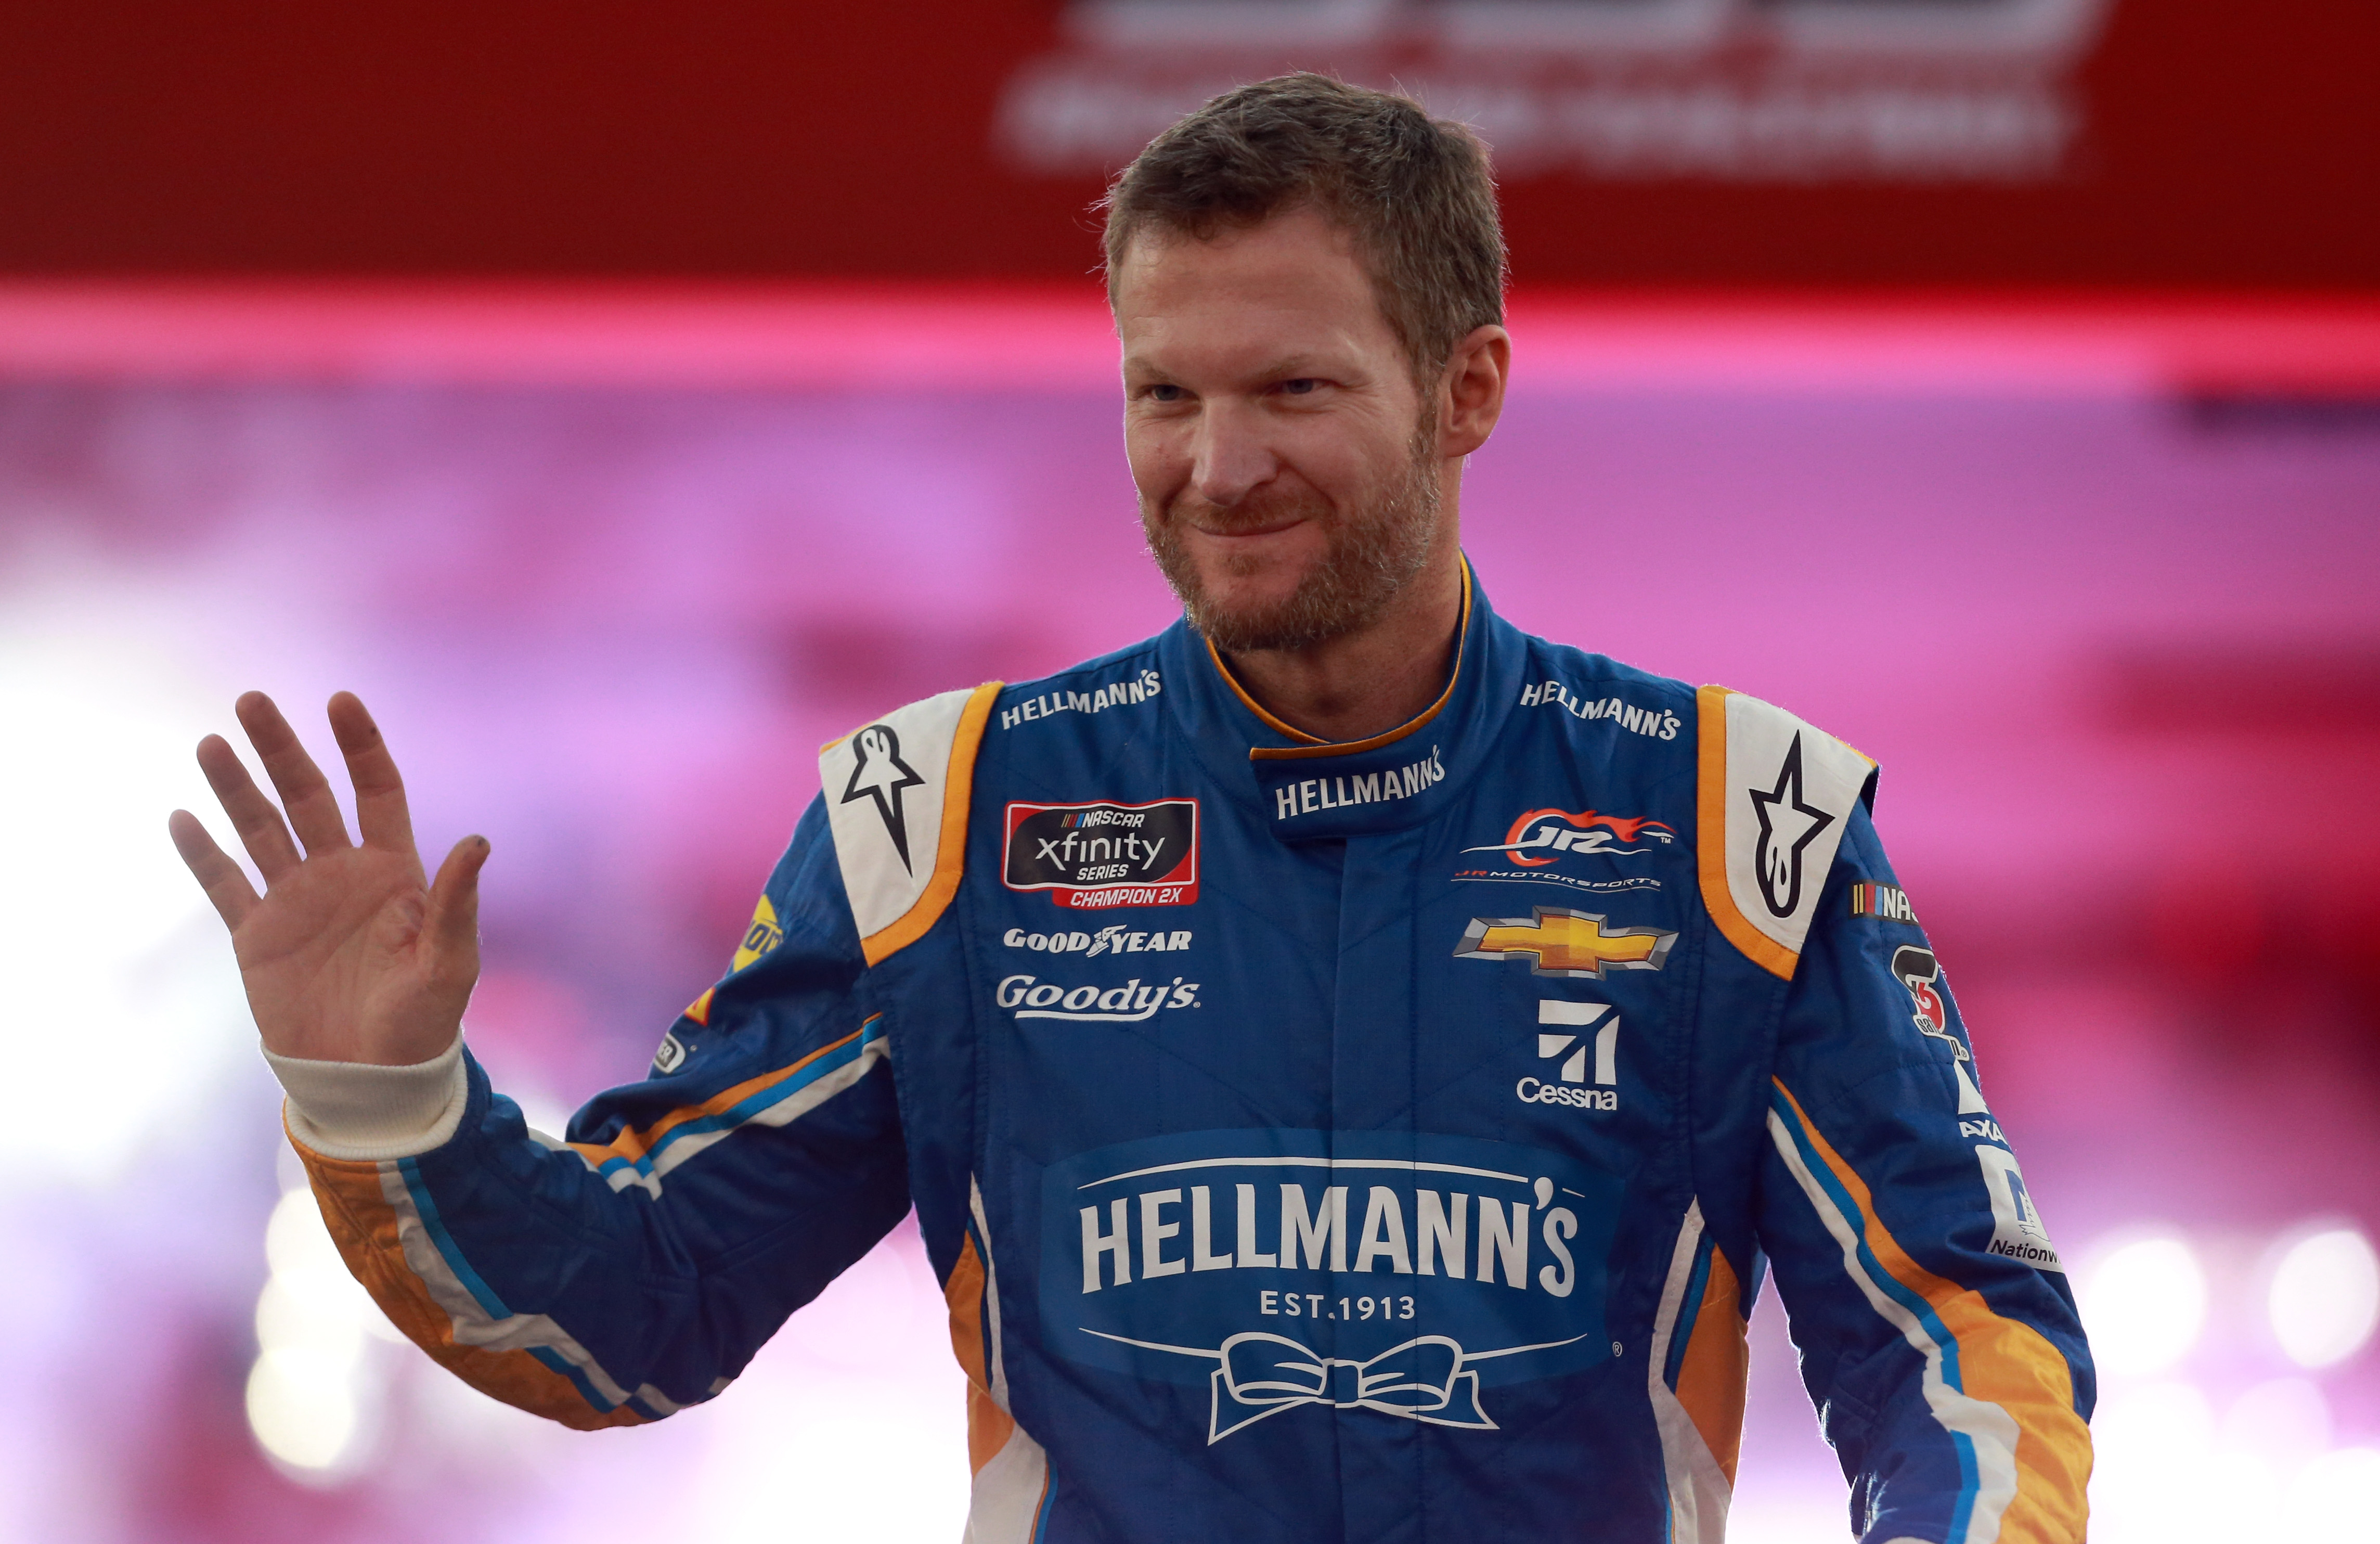 Q&A: Dale Earnhardt Jr. opens up about concussions, fear and walking away